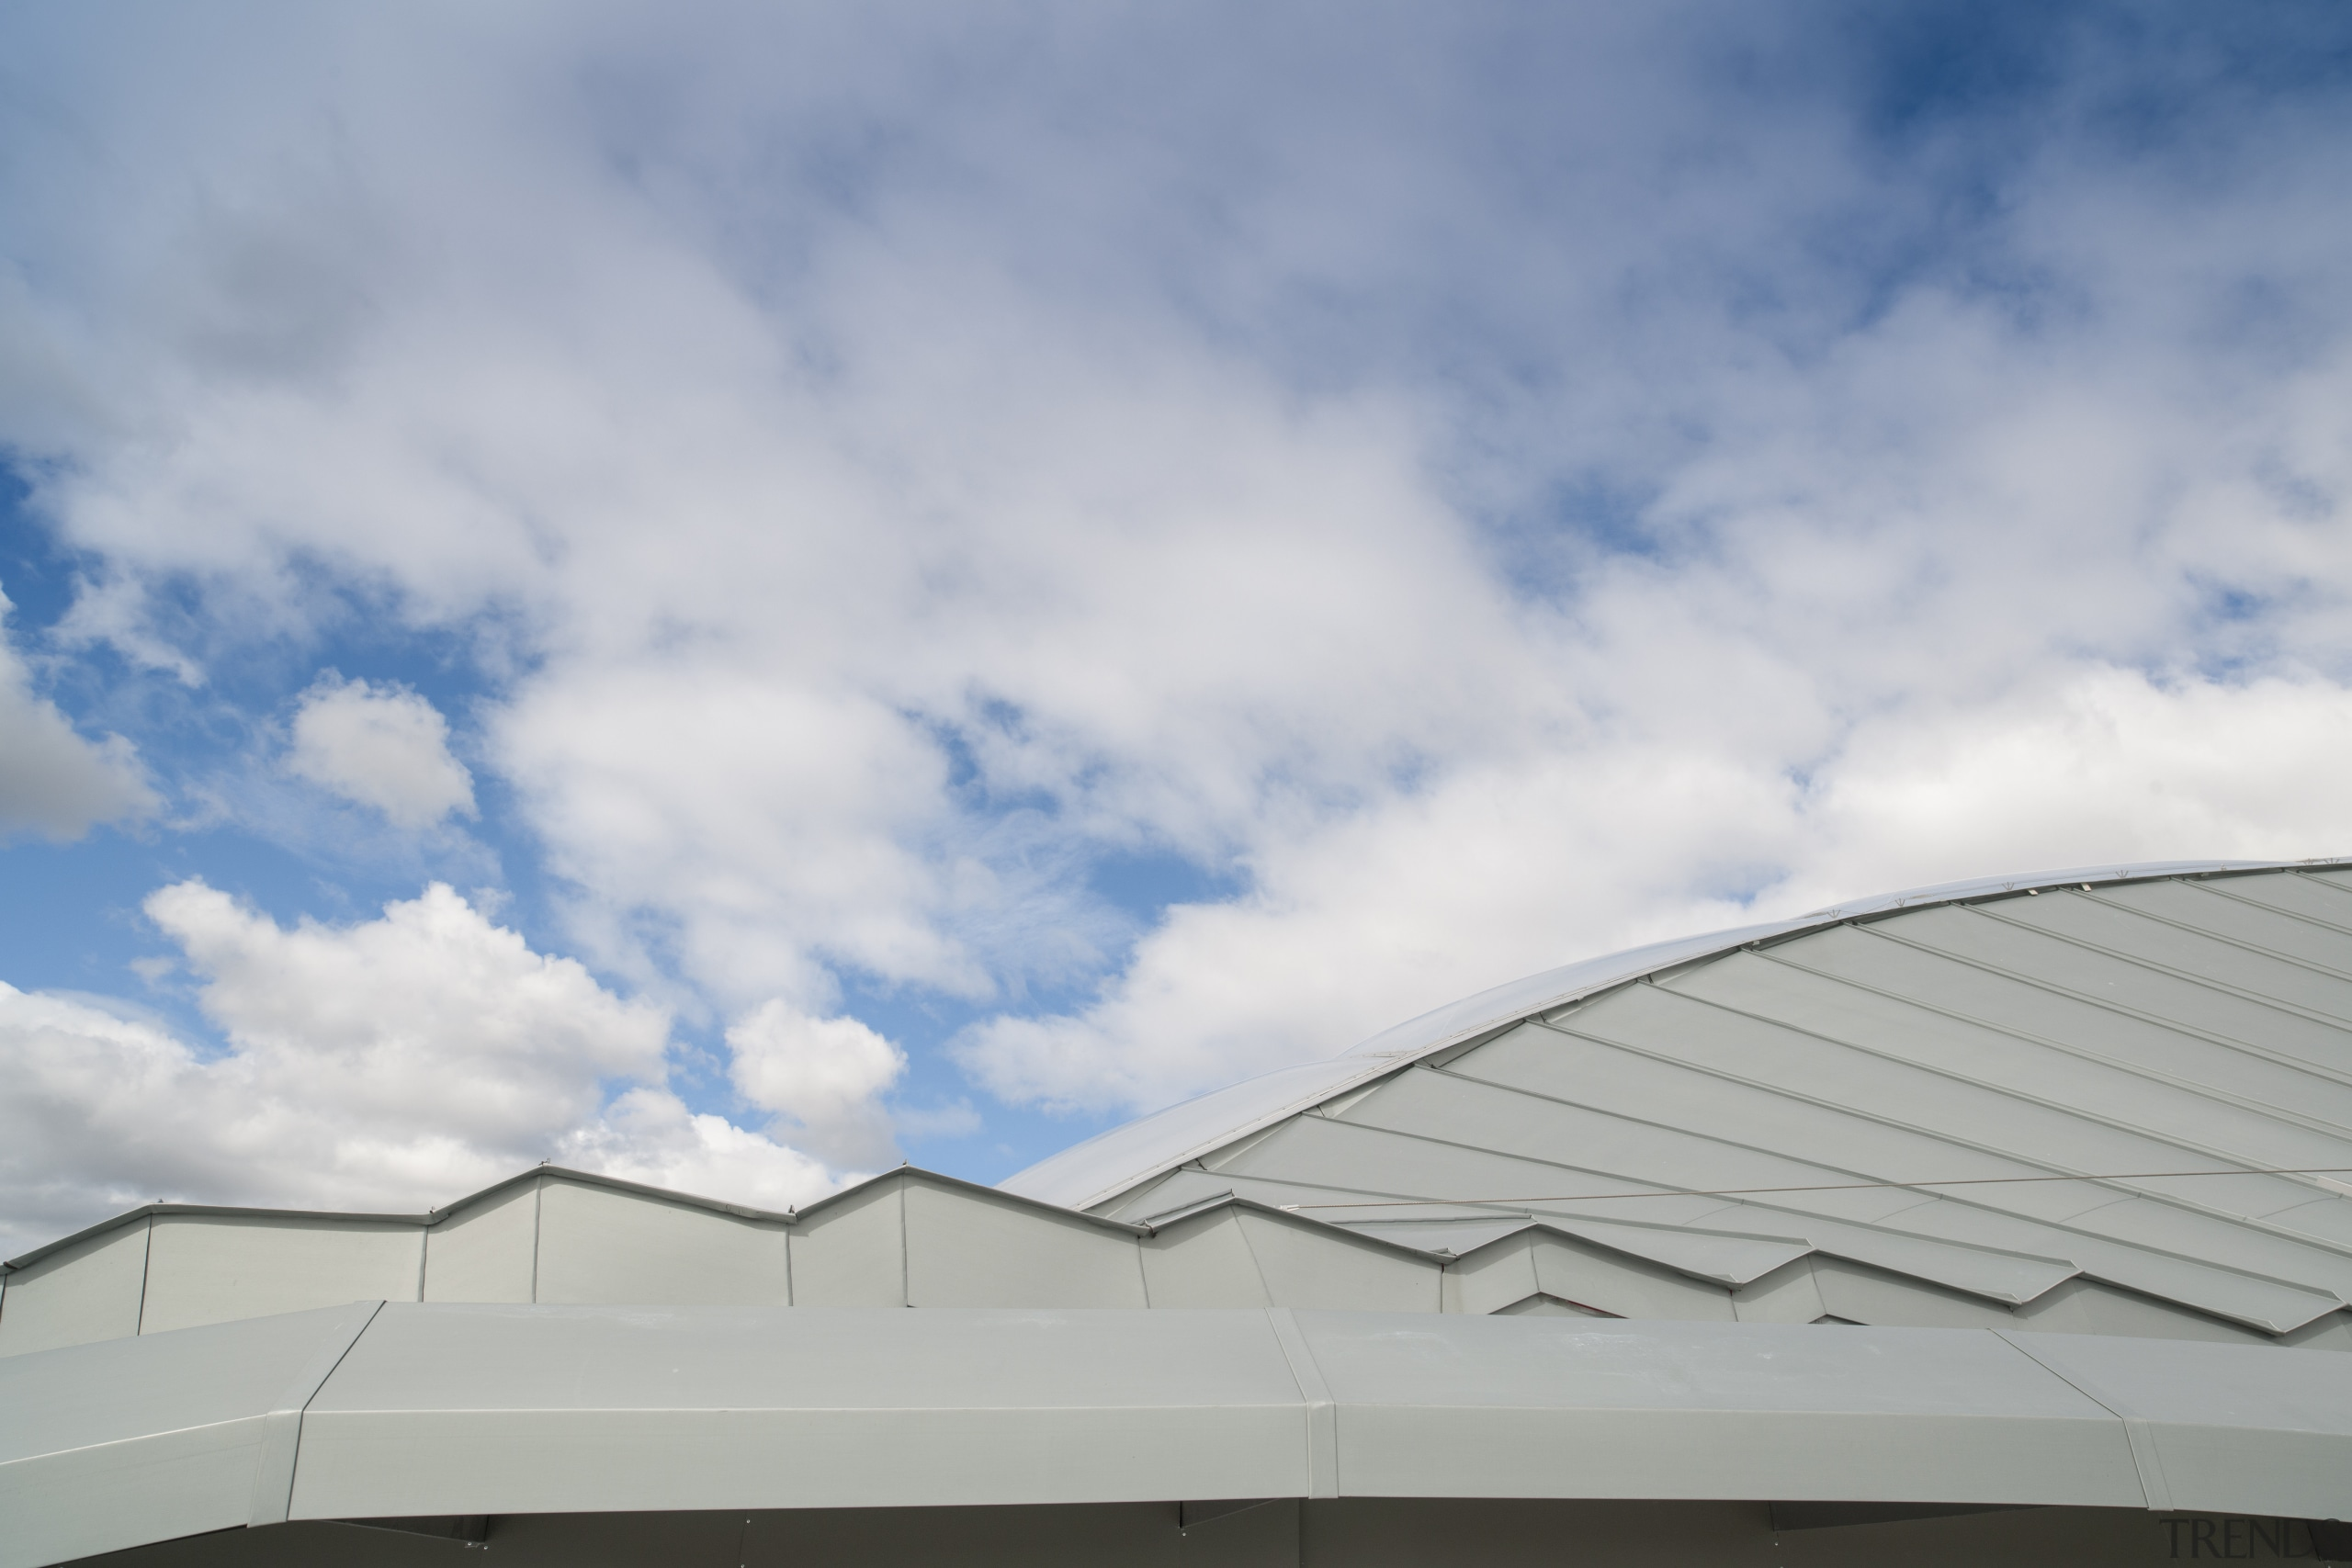 The roof was chosen in part for its angle, architecture, atmosphere of earth, building, cloud, daylighting, daytime, facade, line, meteorological phenomenon, roof, sky, structure, gray